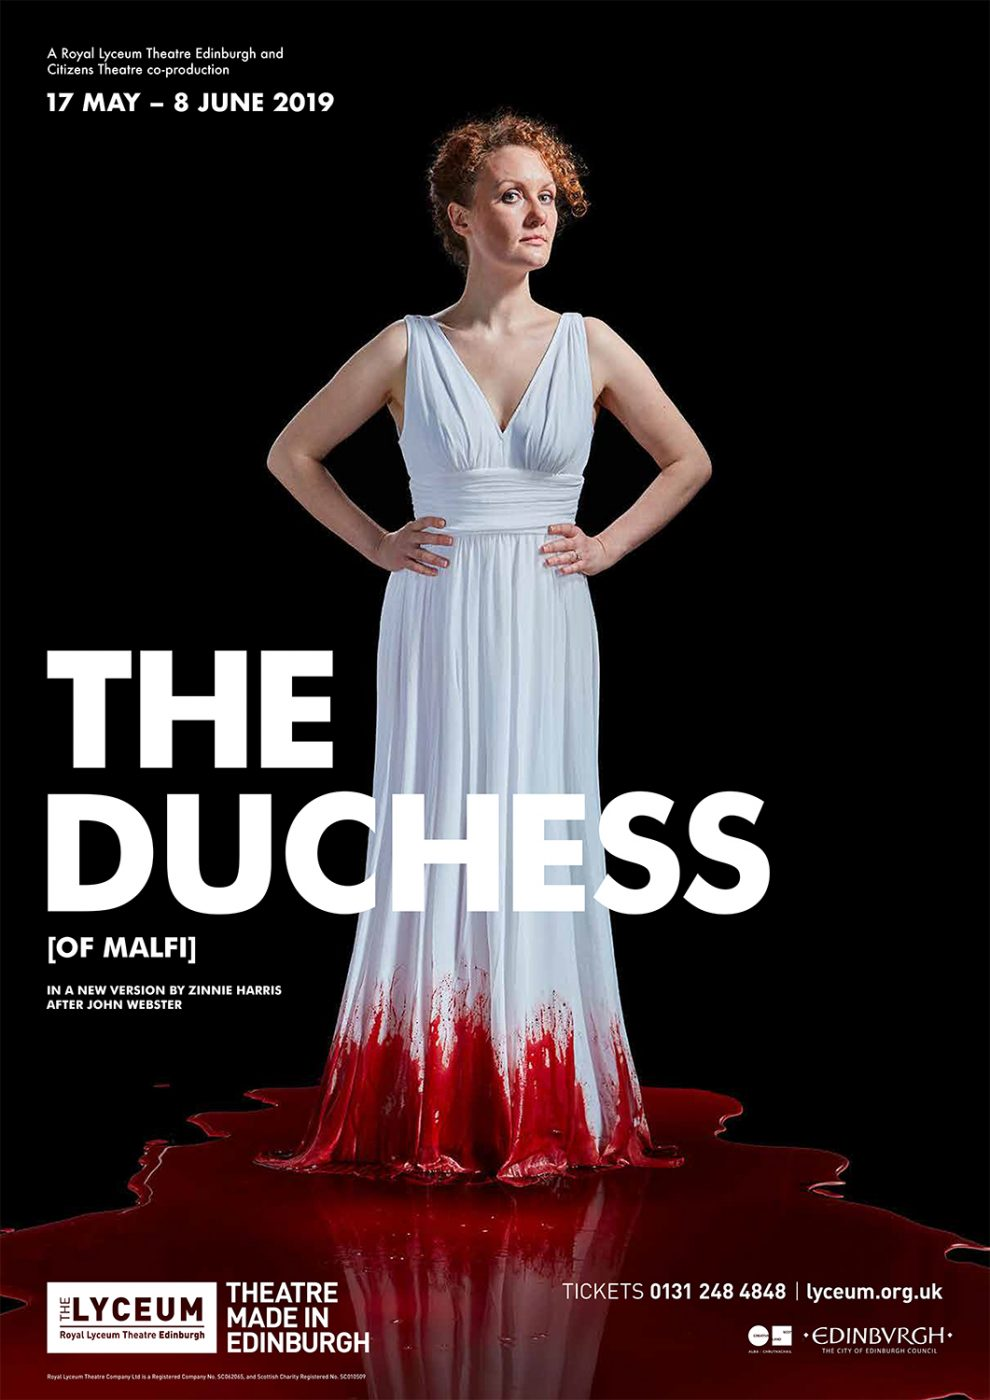 the final poster for The Duchess of Malfi at the Lyceum theatre Edinburgh